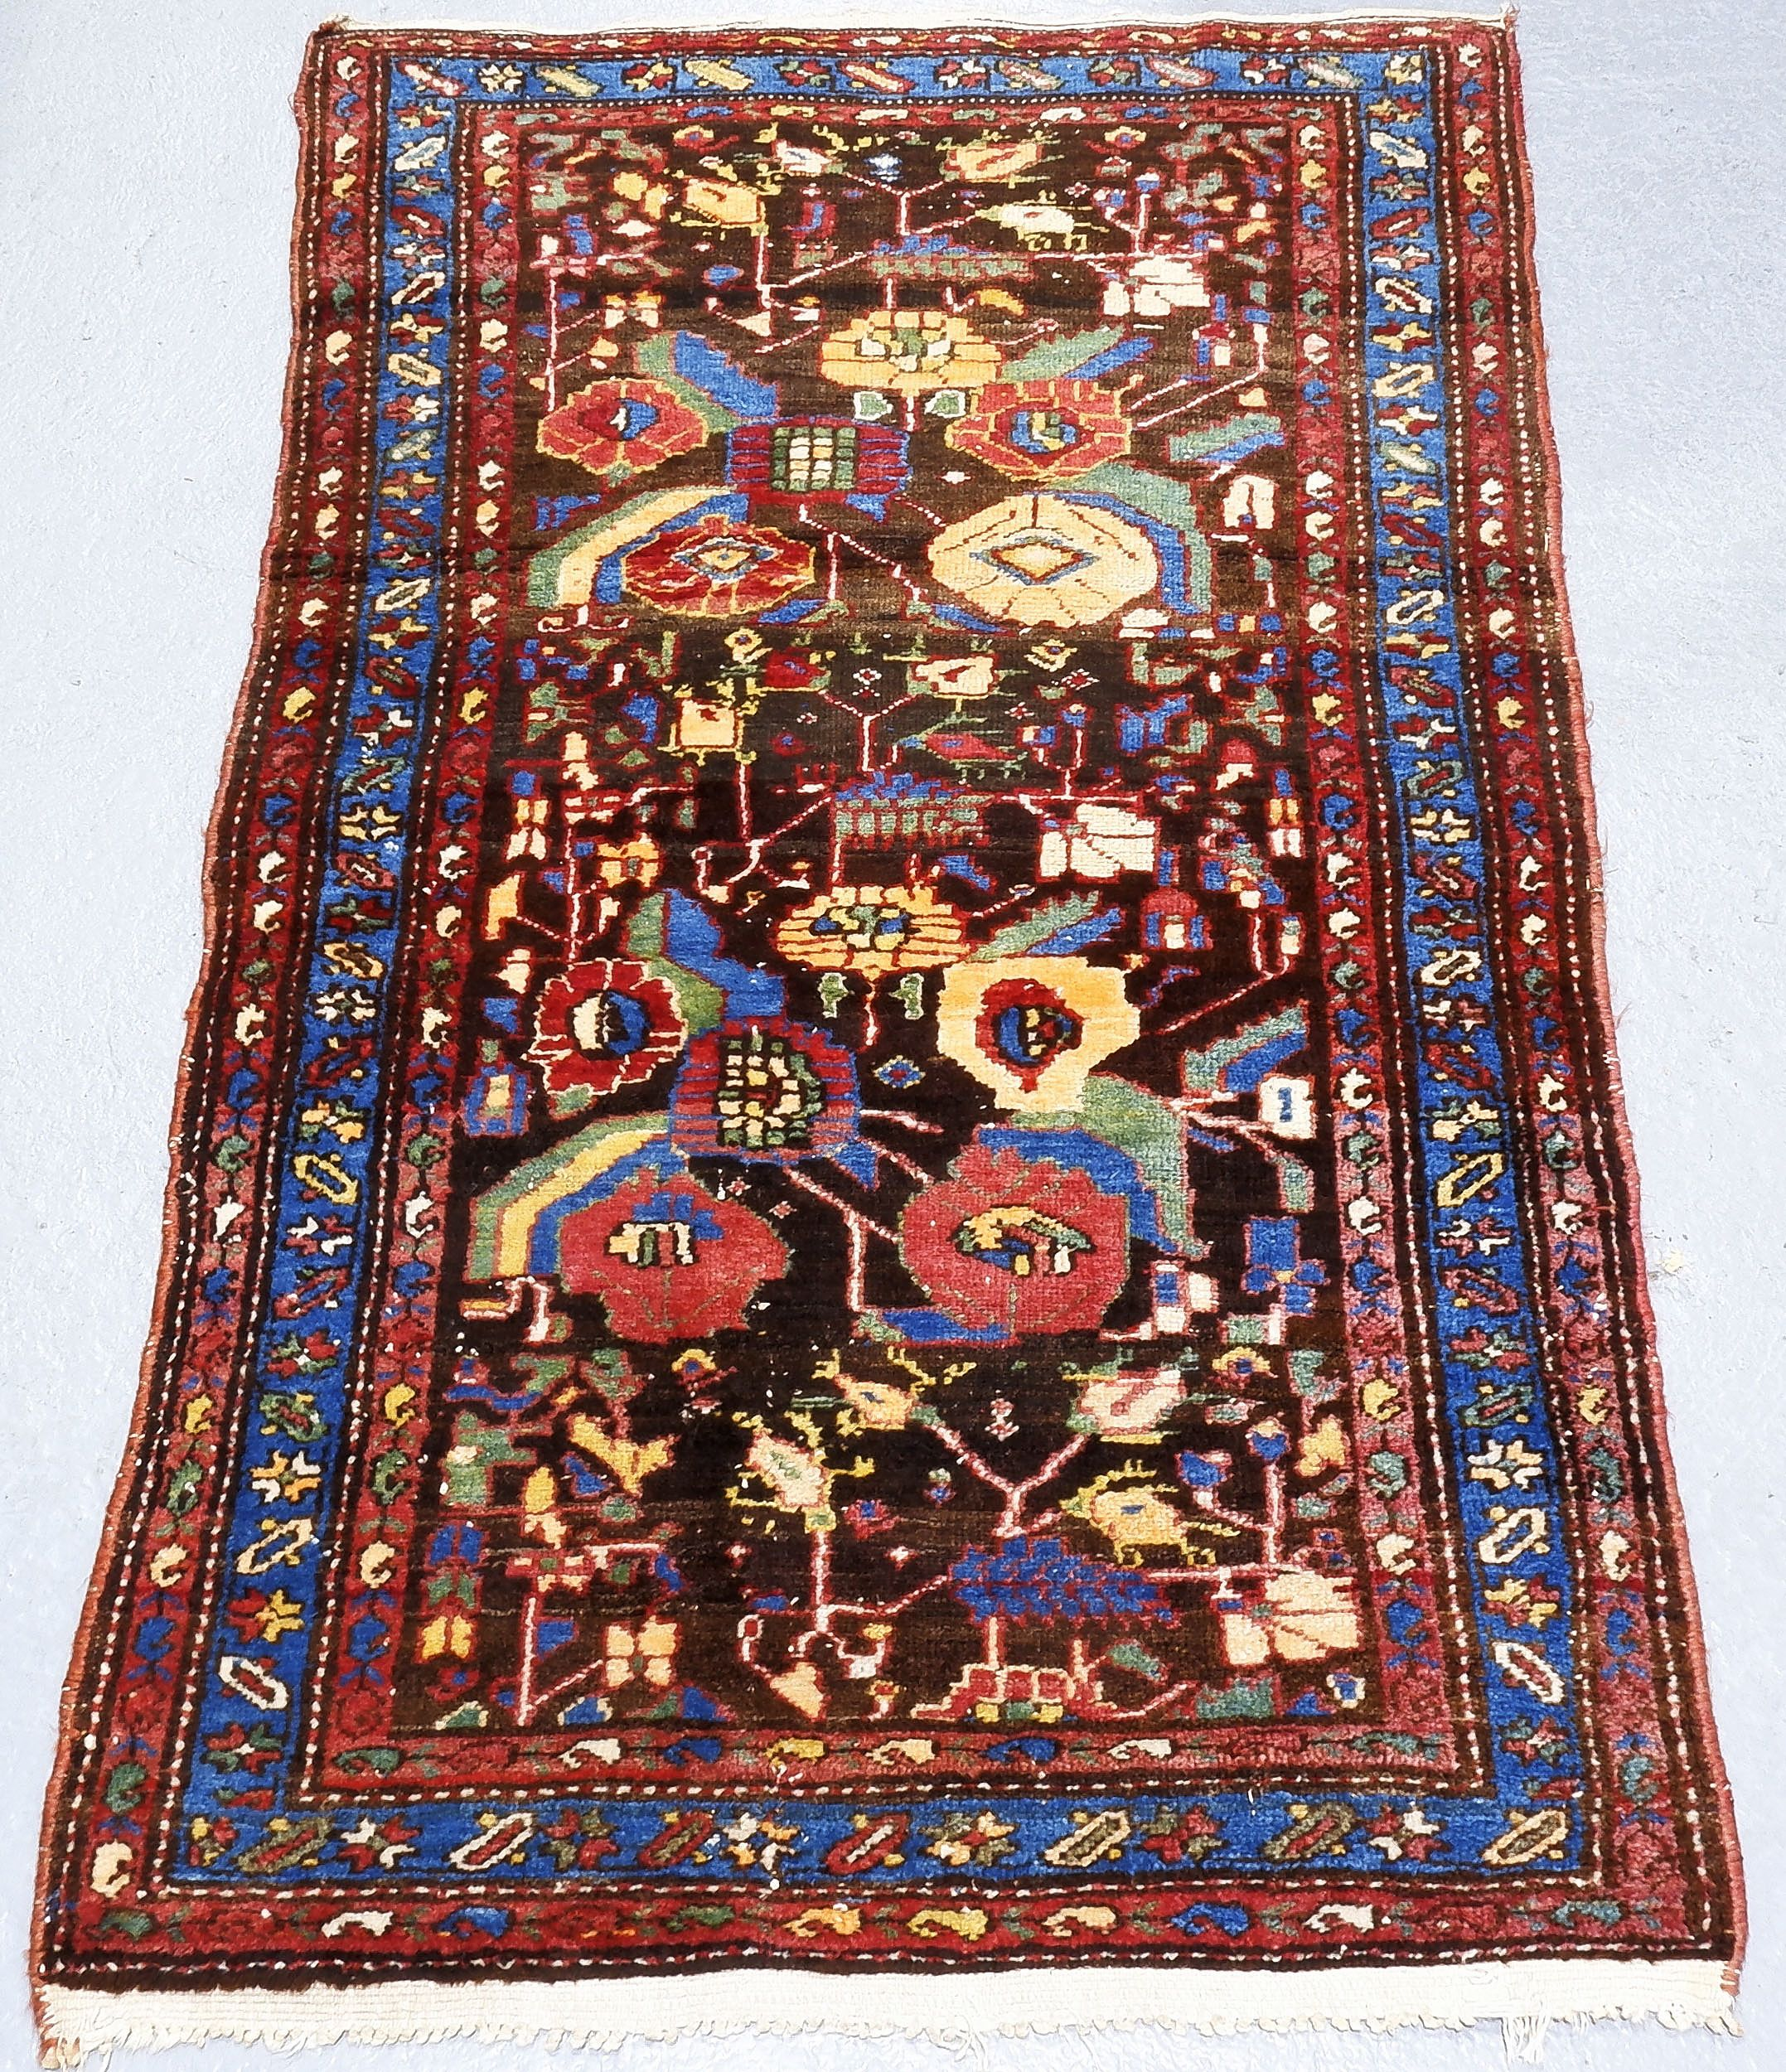 'Antique Caucasian Hand Knotted Wool Pile Rug'